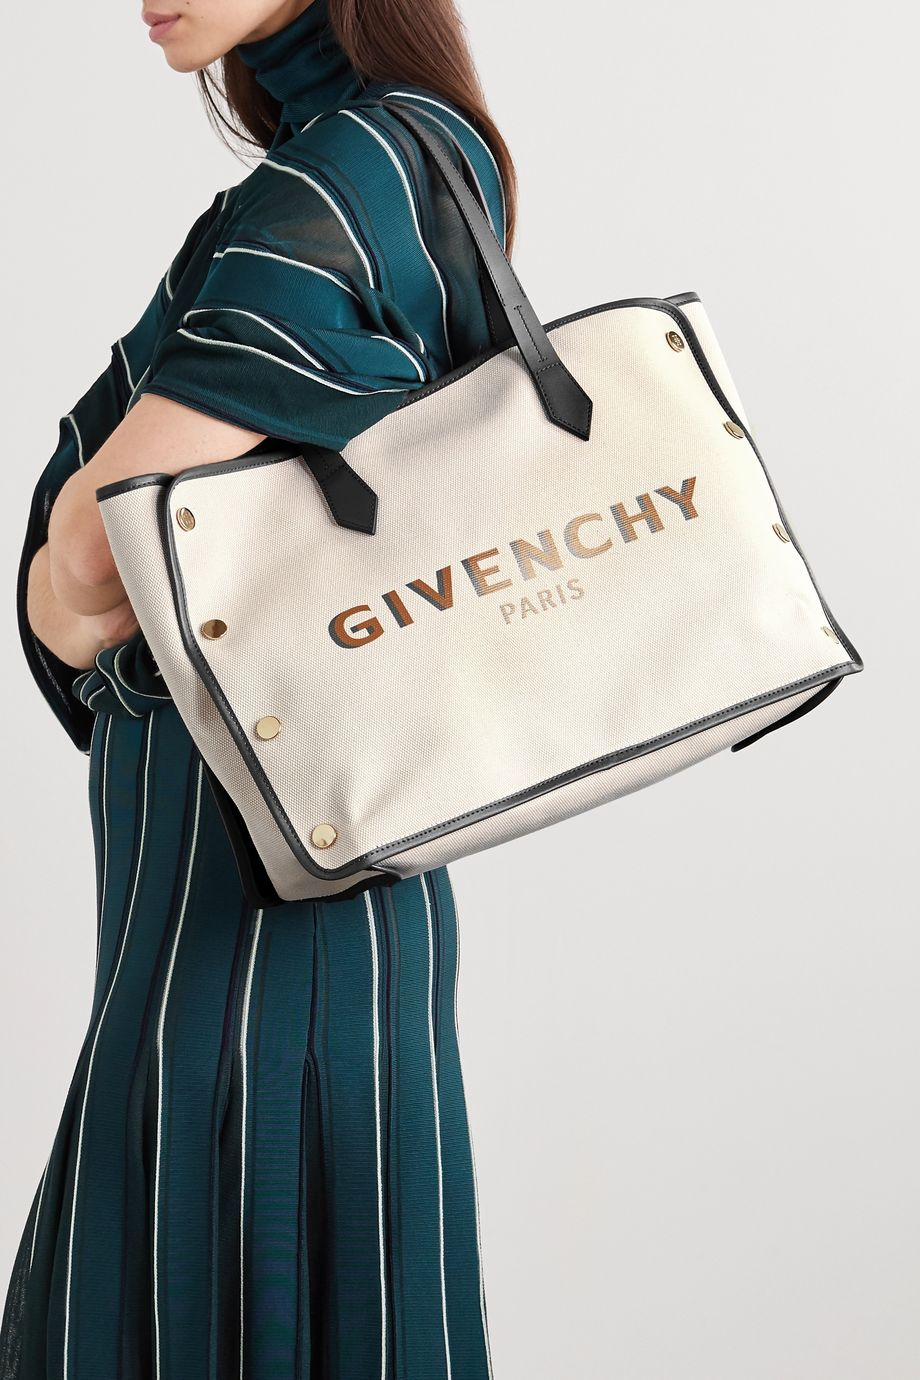 Givenchy Sac à main en toile de coton imprimée à finitions en cuir Bond